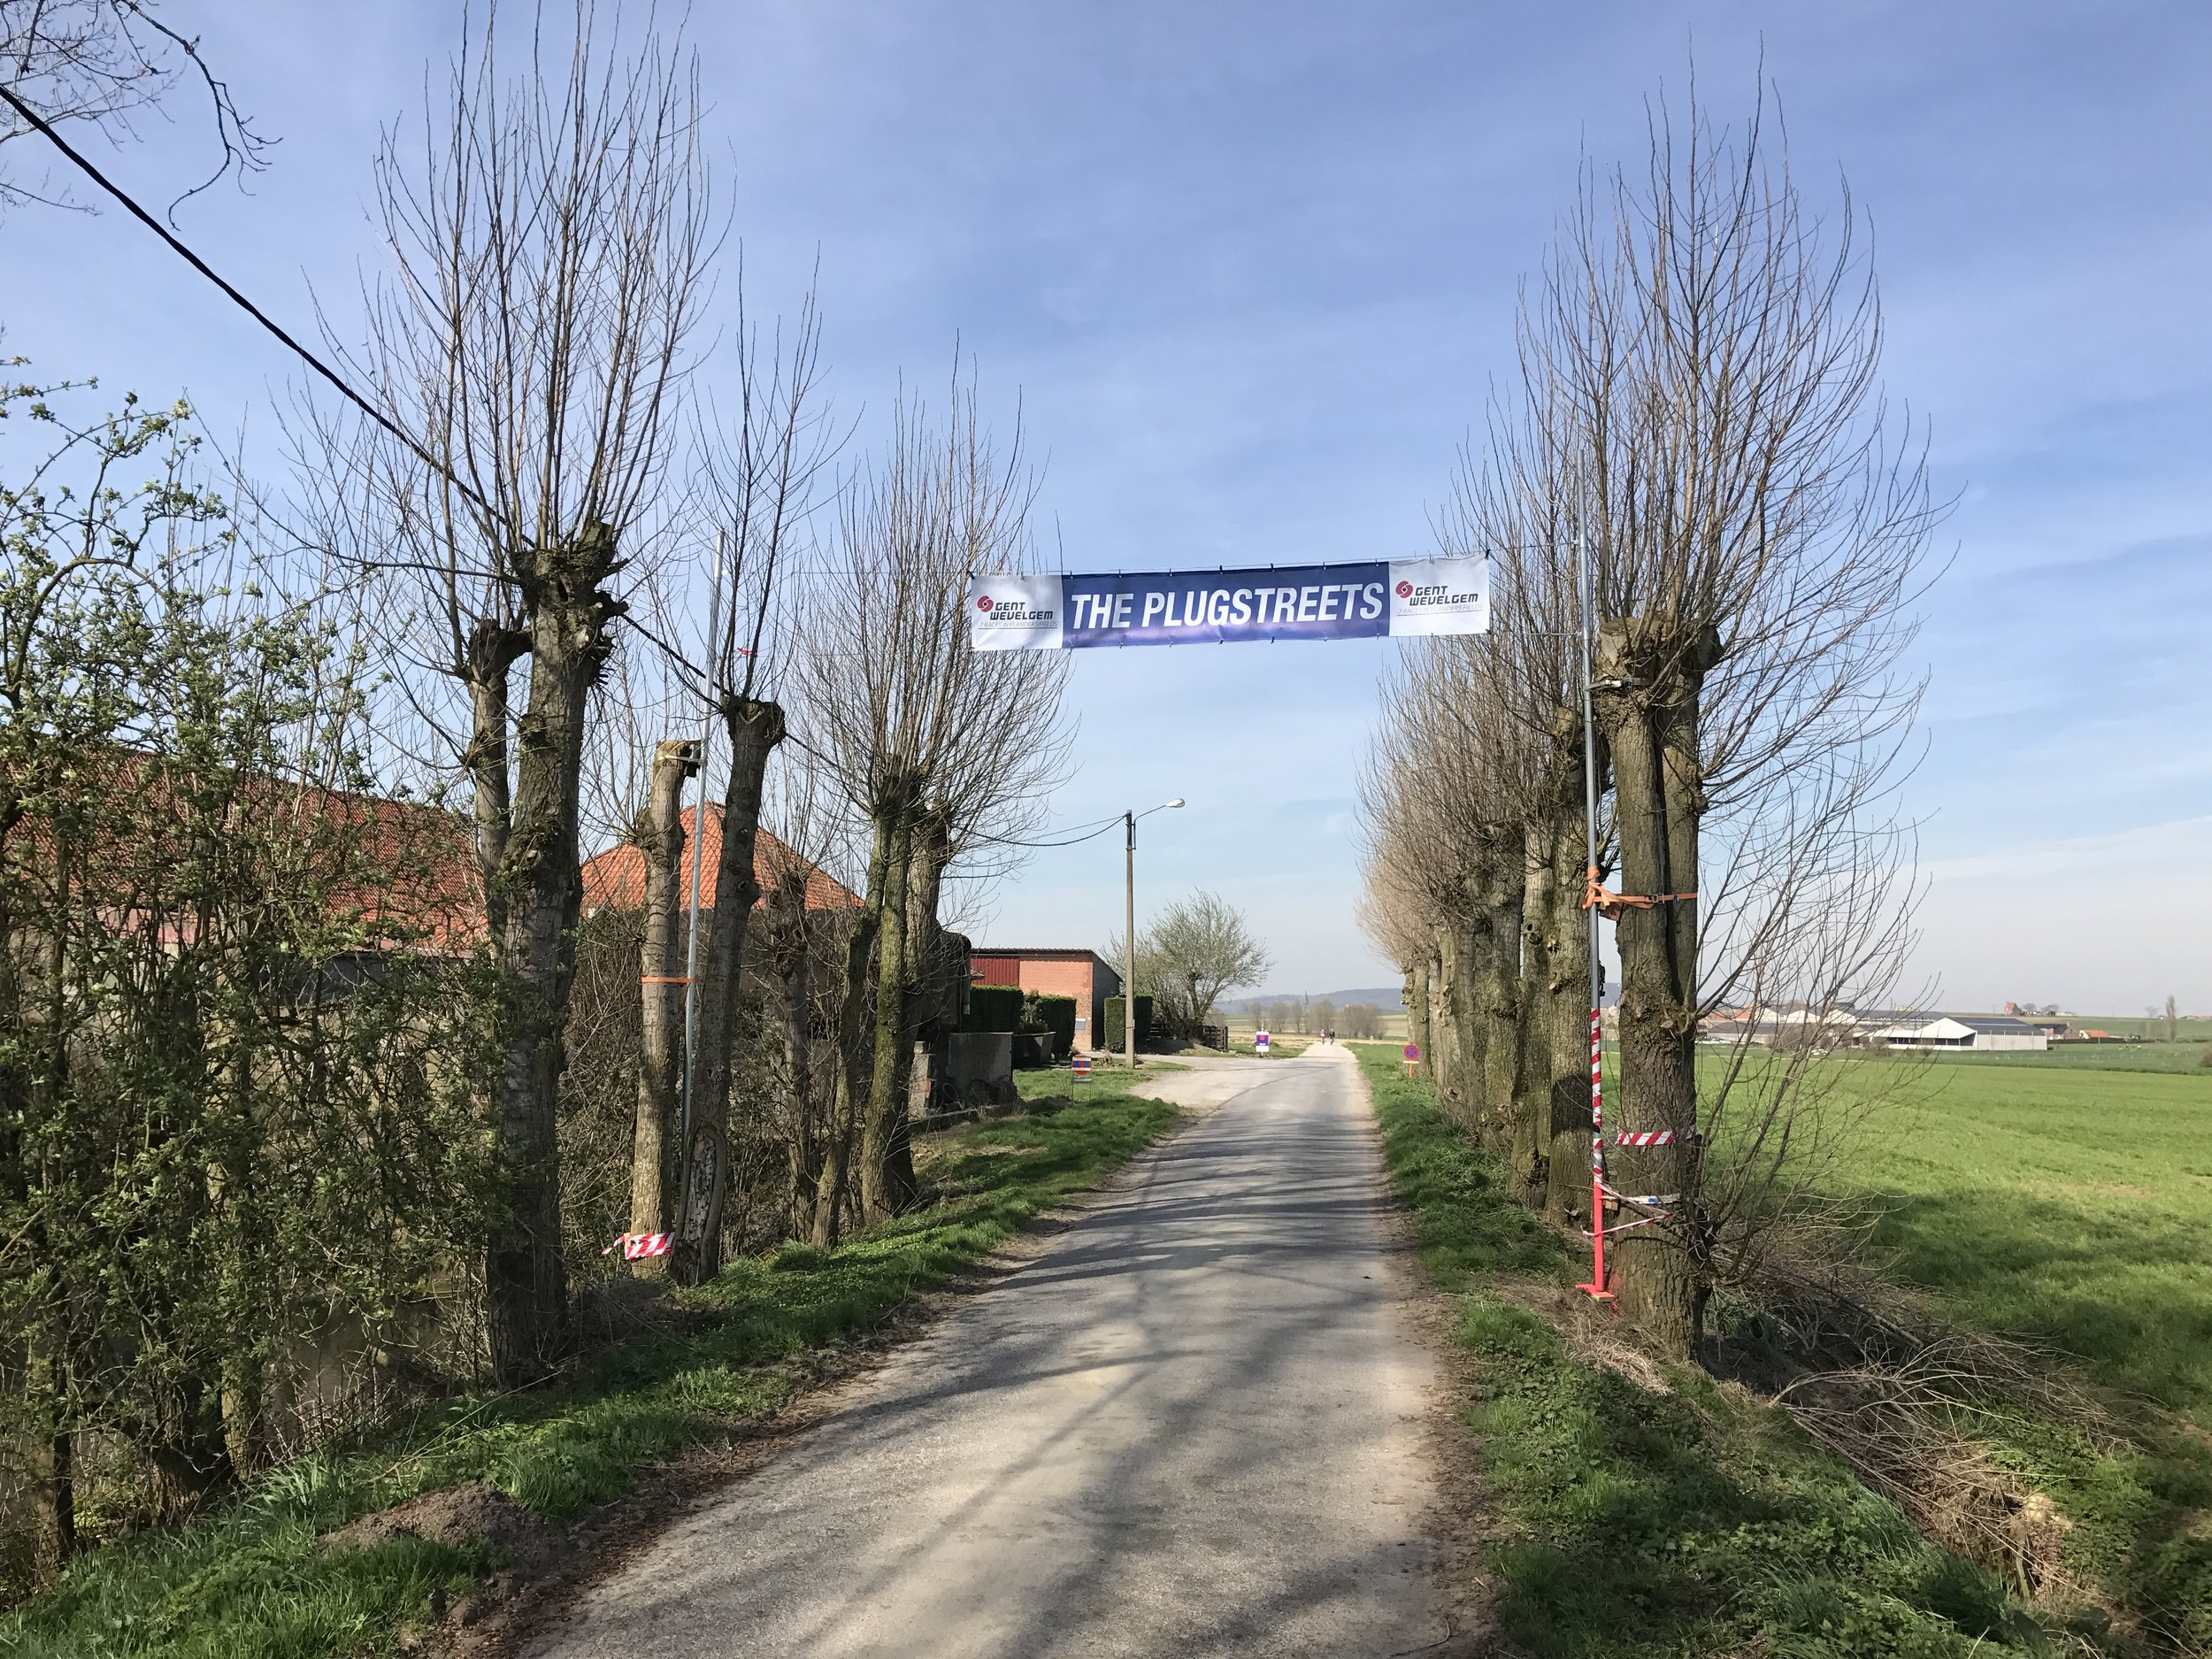 The Plugstreets have added a new dimension to Gent-Wevelgem in recent years.